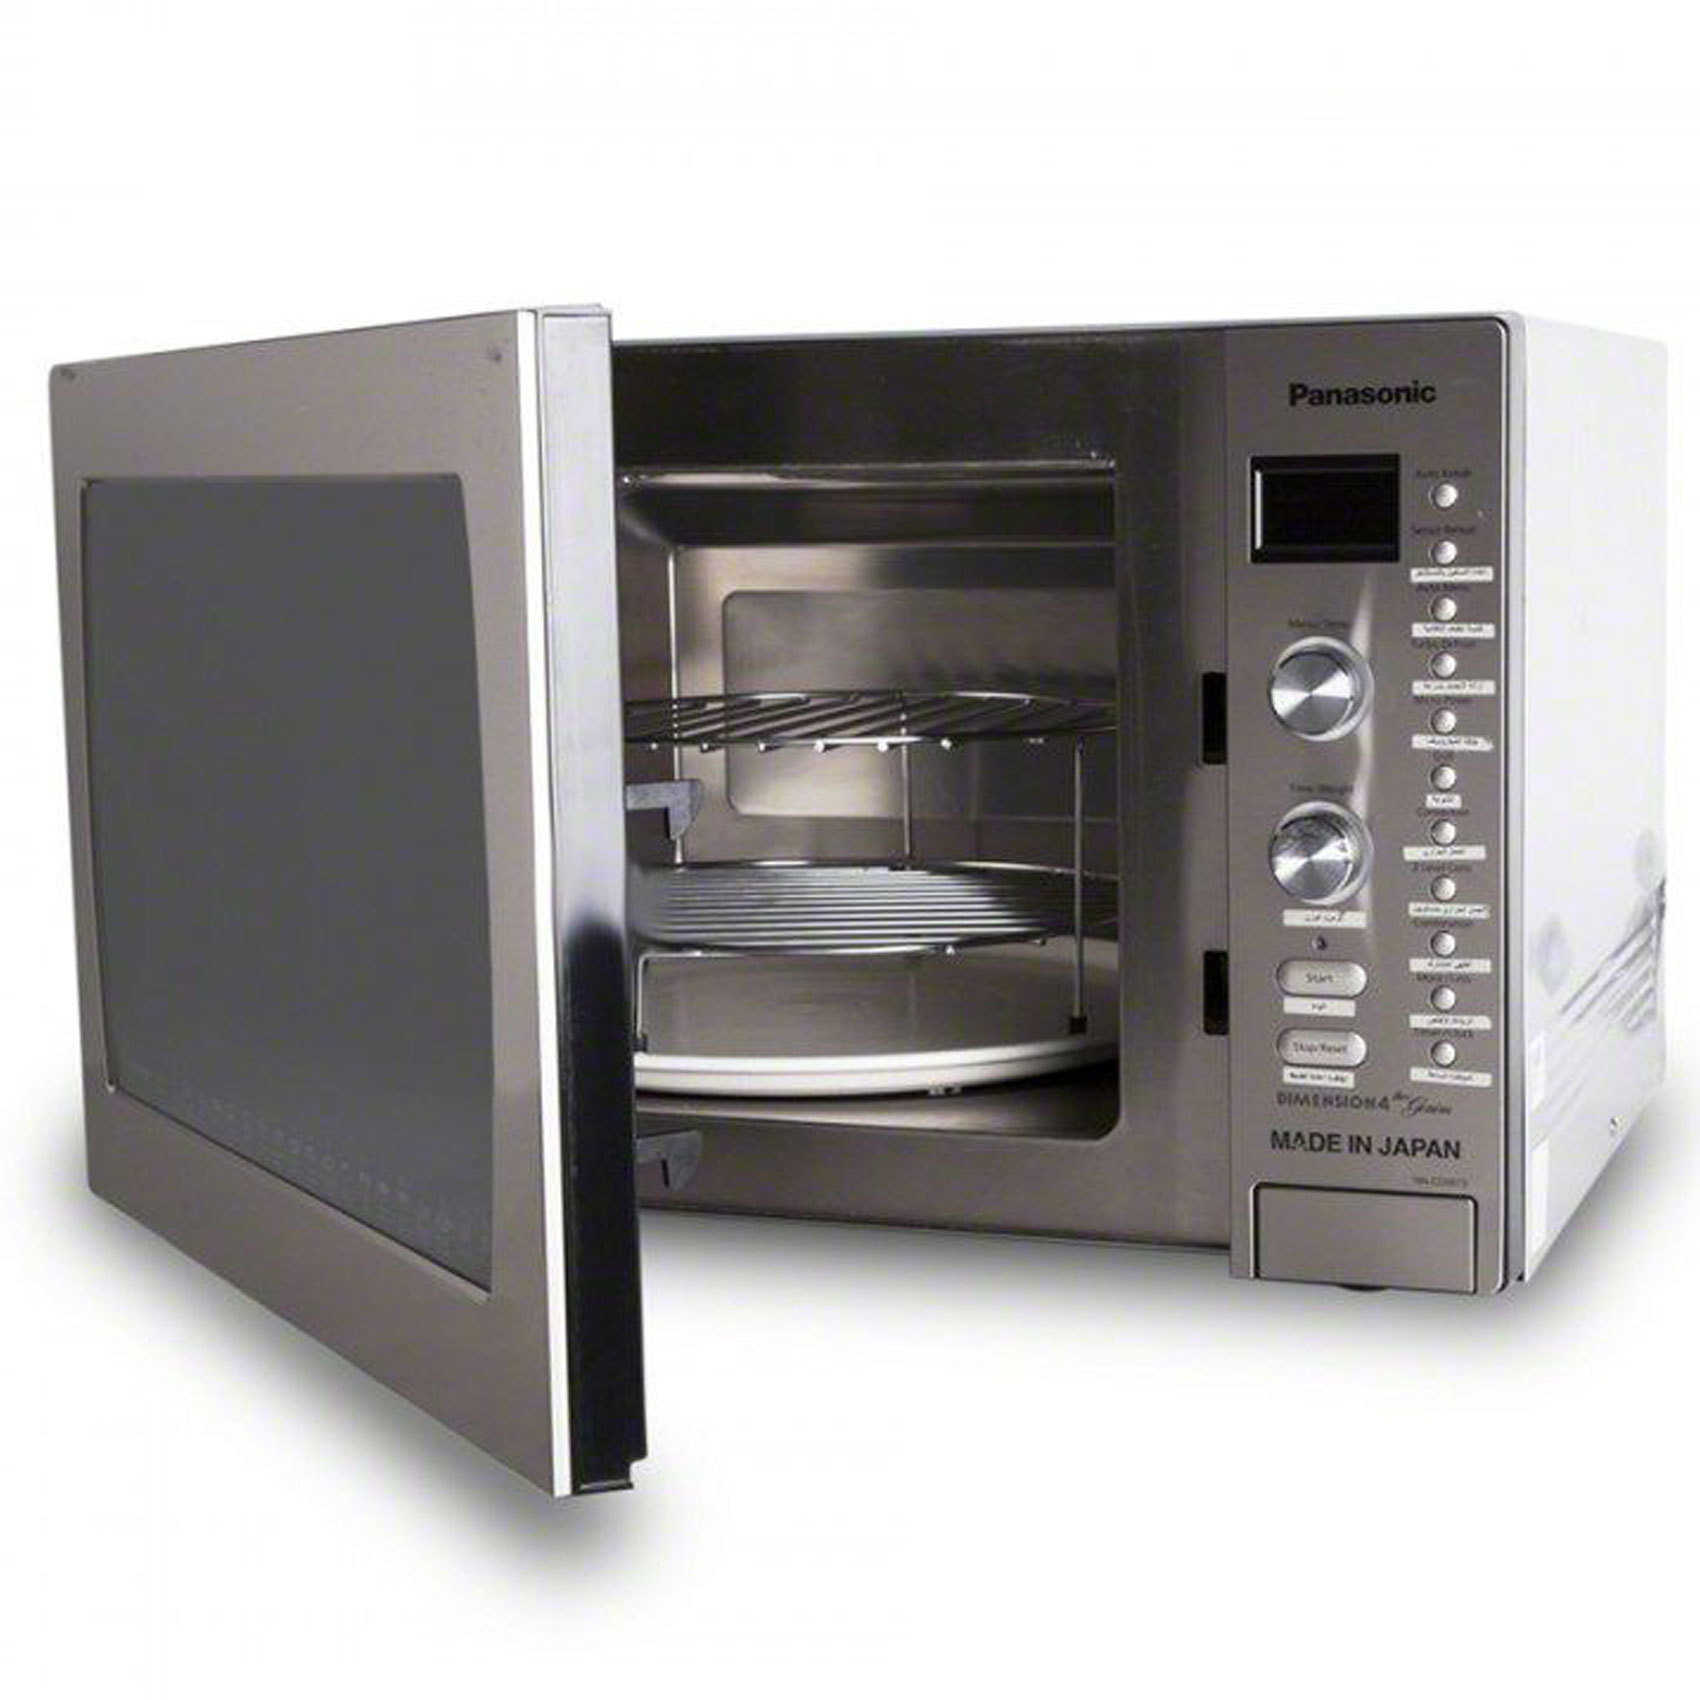 Panasonic Microwave Nn Cd997s